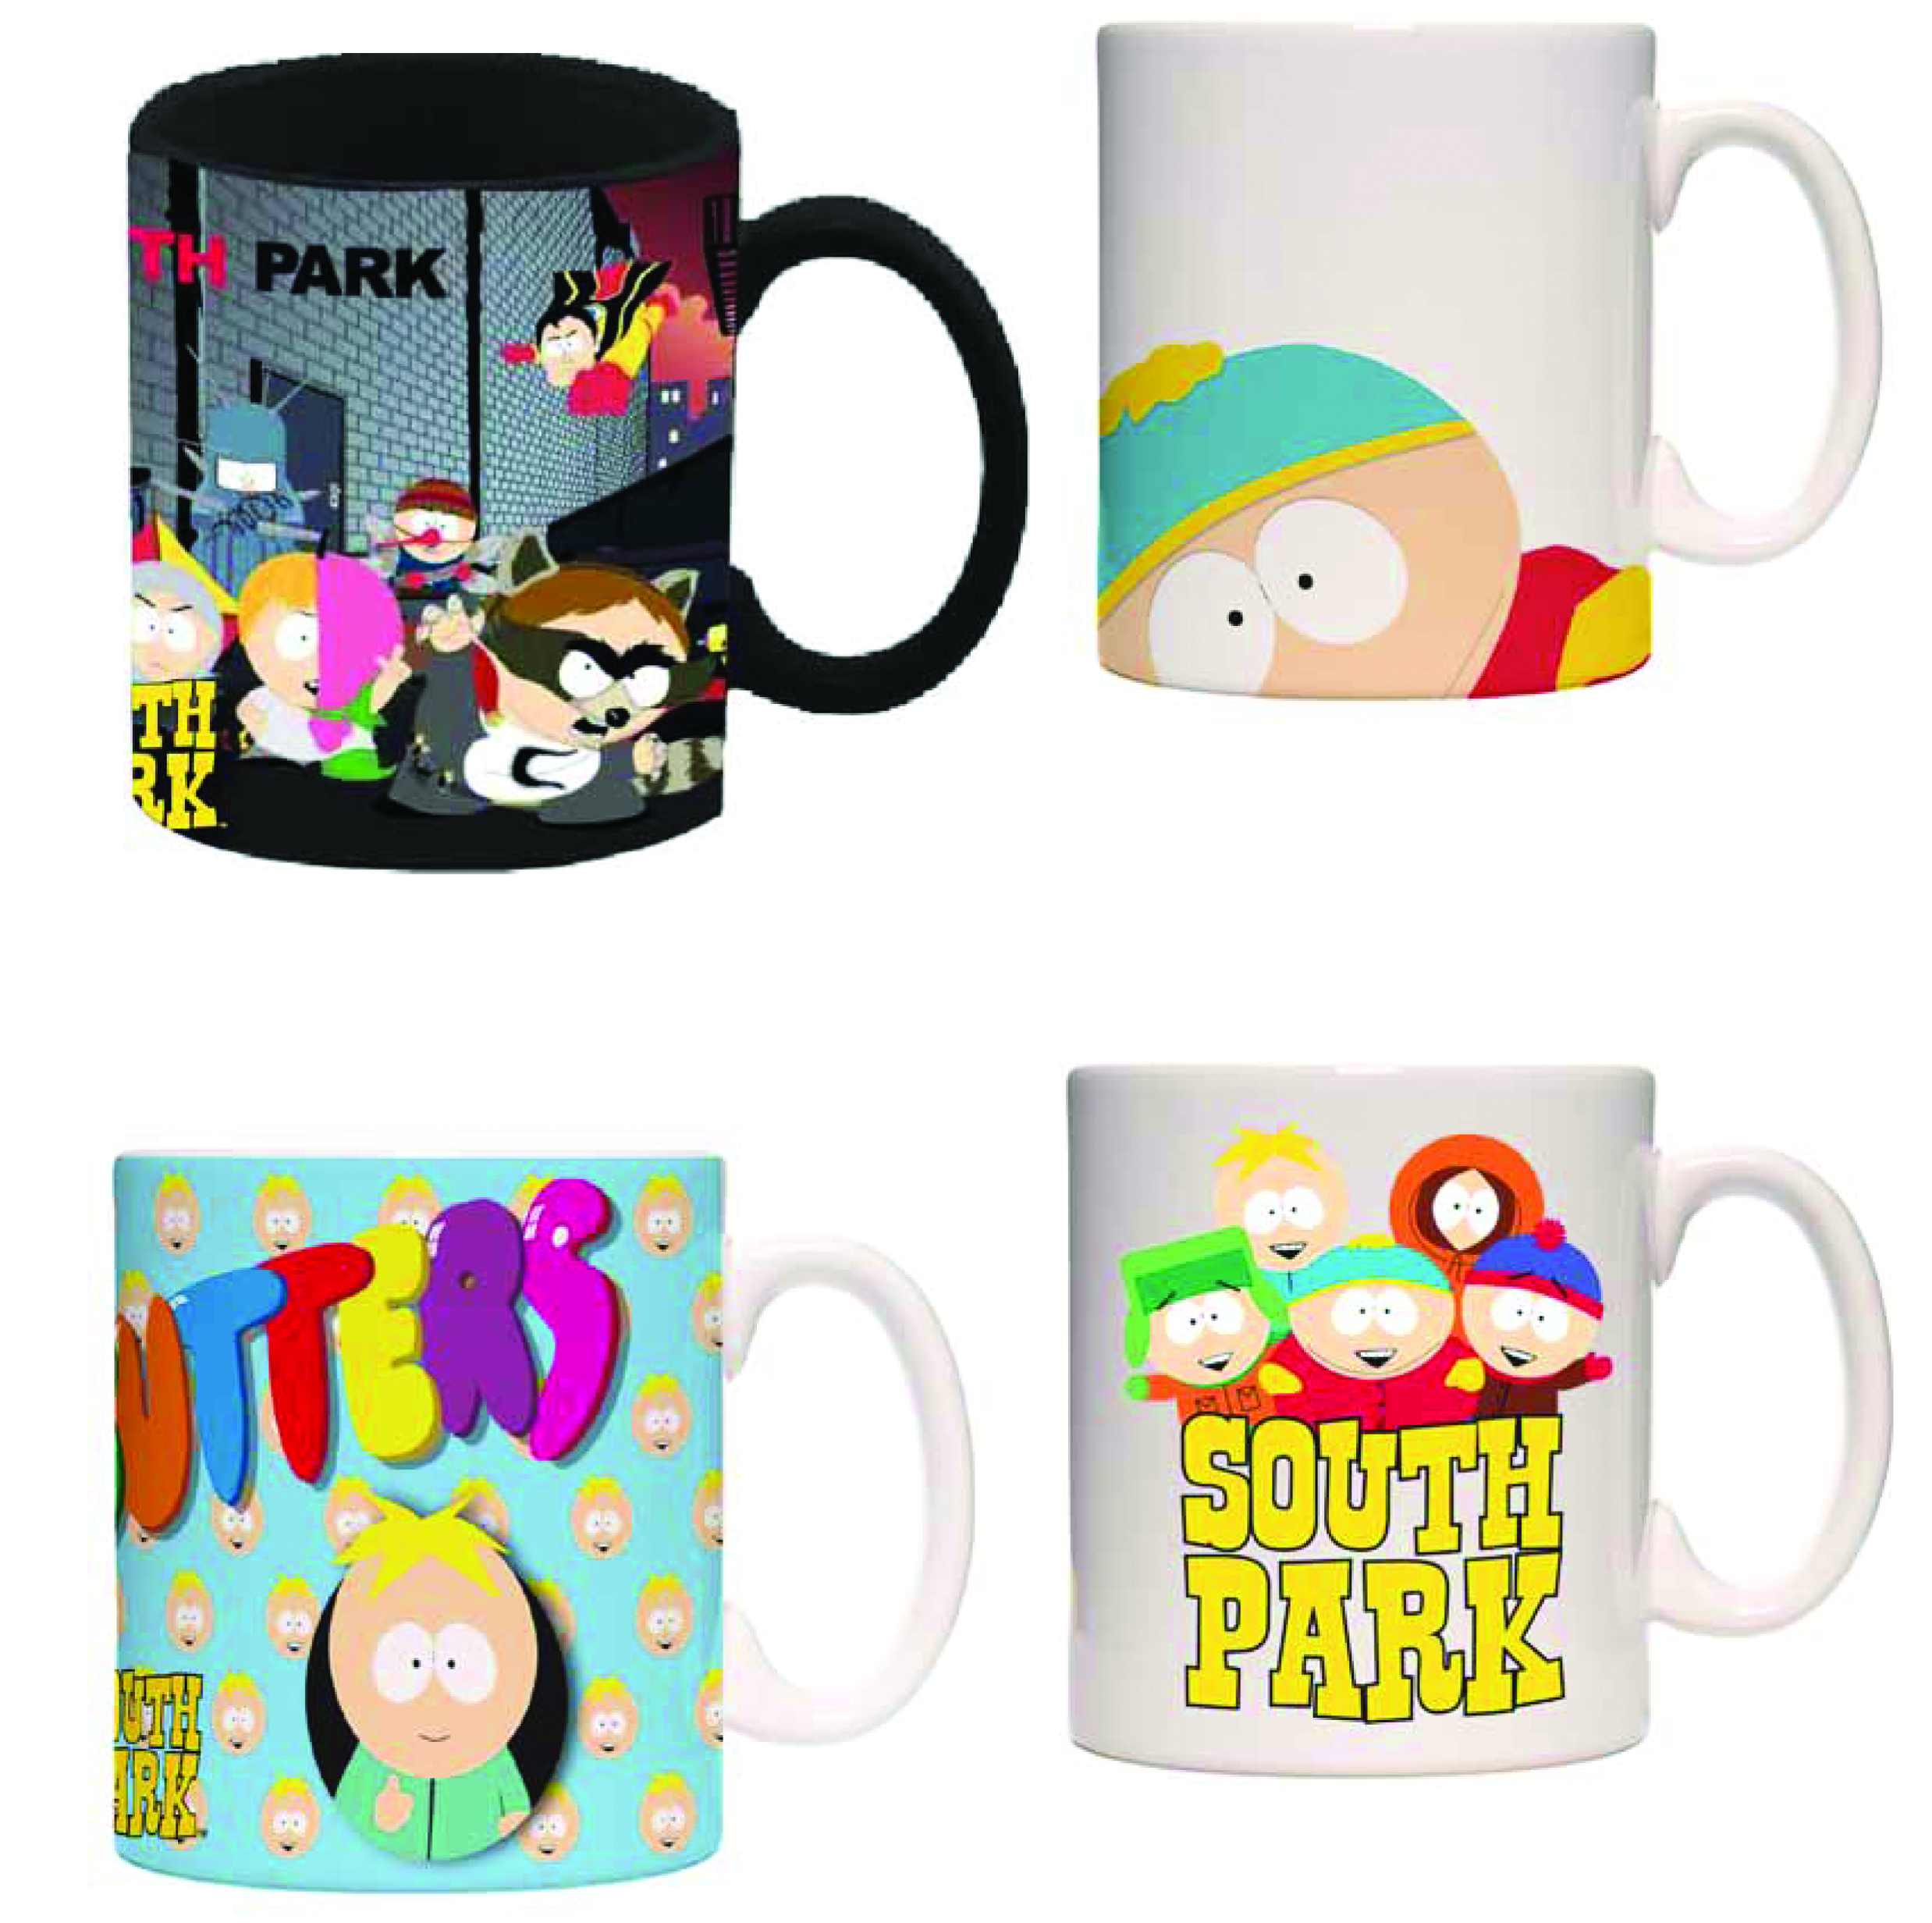 SOUTH PARK GROUP COFFEE MUG